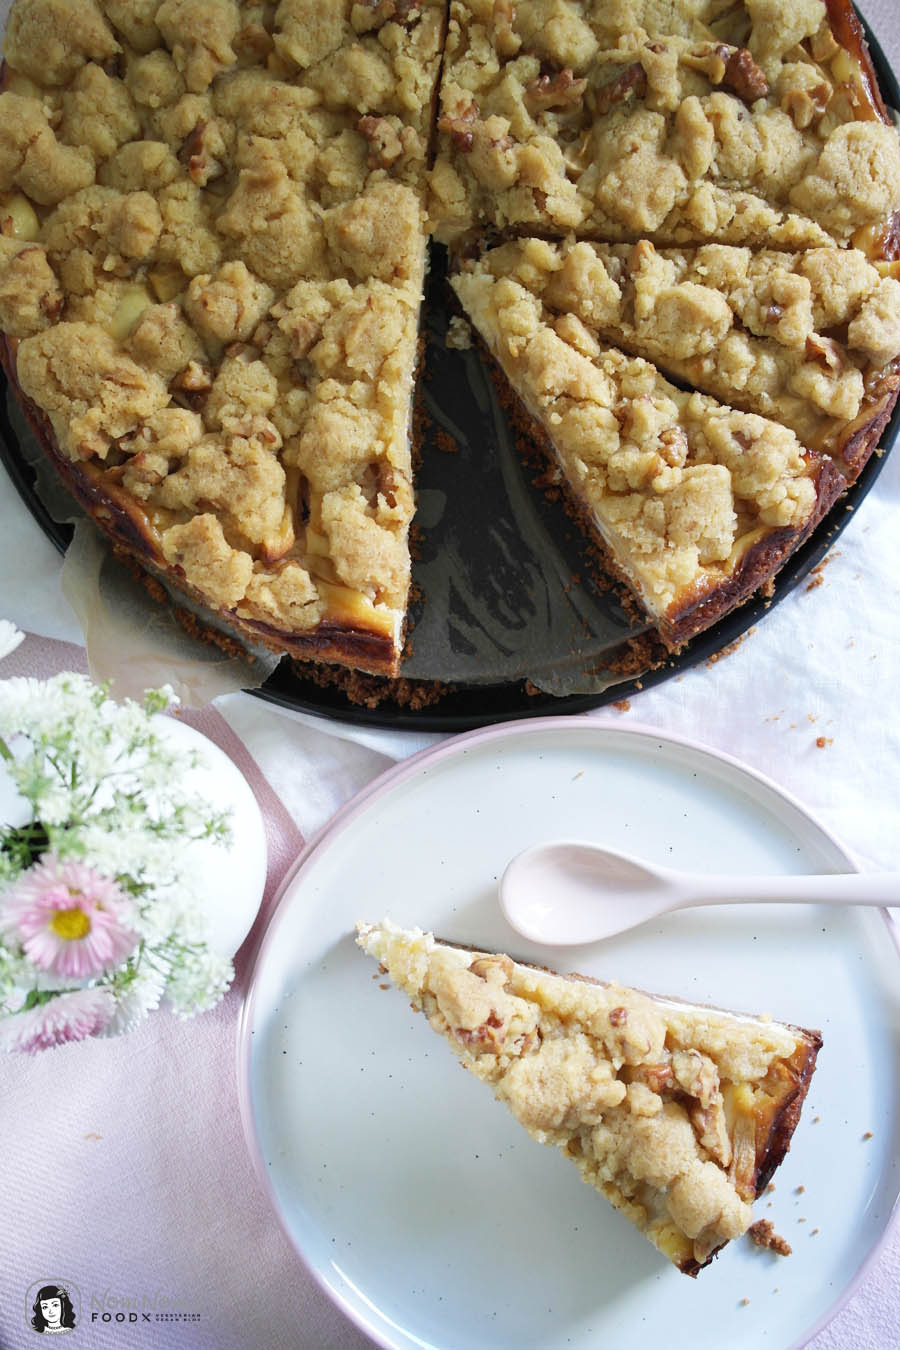 Apple Rhubarb Cheesecake Pie with Crumble Walnut Crust | Apfel-Rhabarber-Käsekuchen mit Walnuss-Streusel-Decke